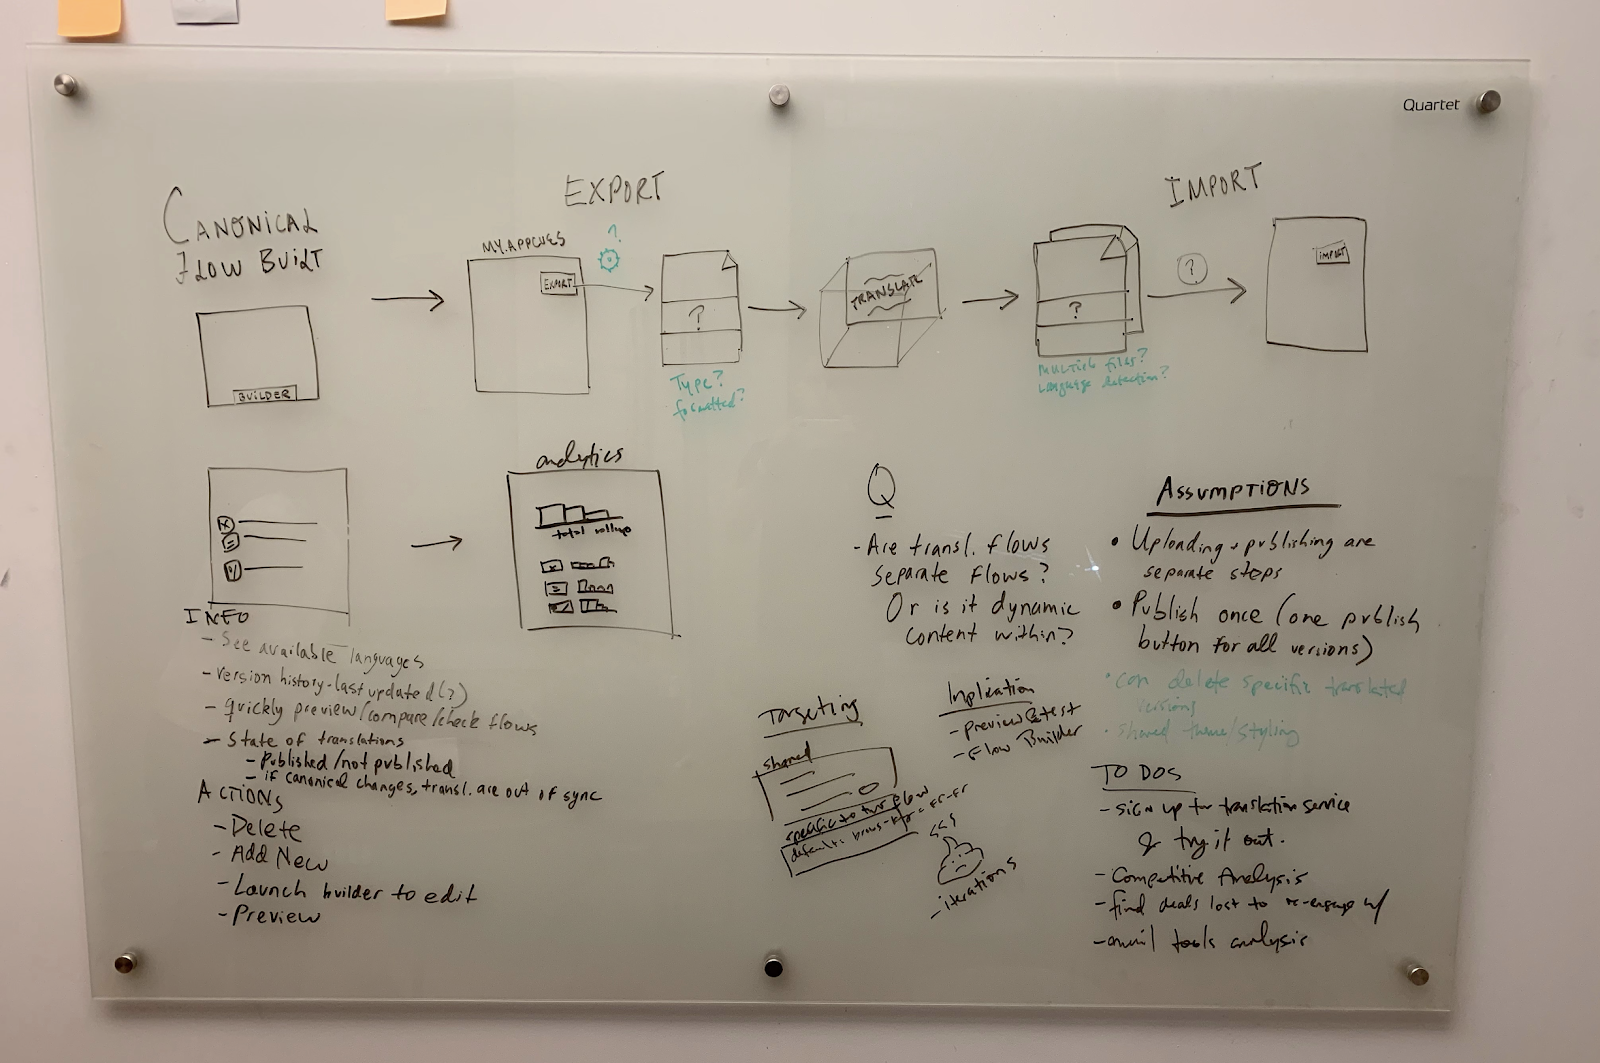 this is a photo of a whiteboard brainstorming session from a product design team, with notes and drawings